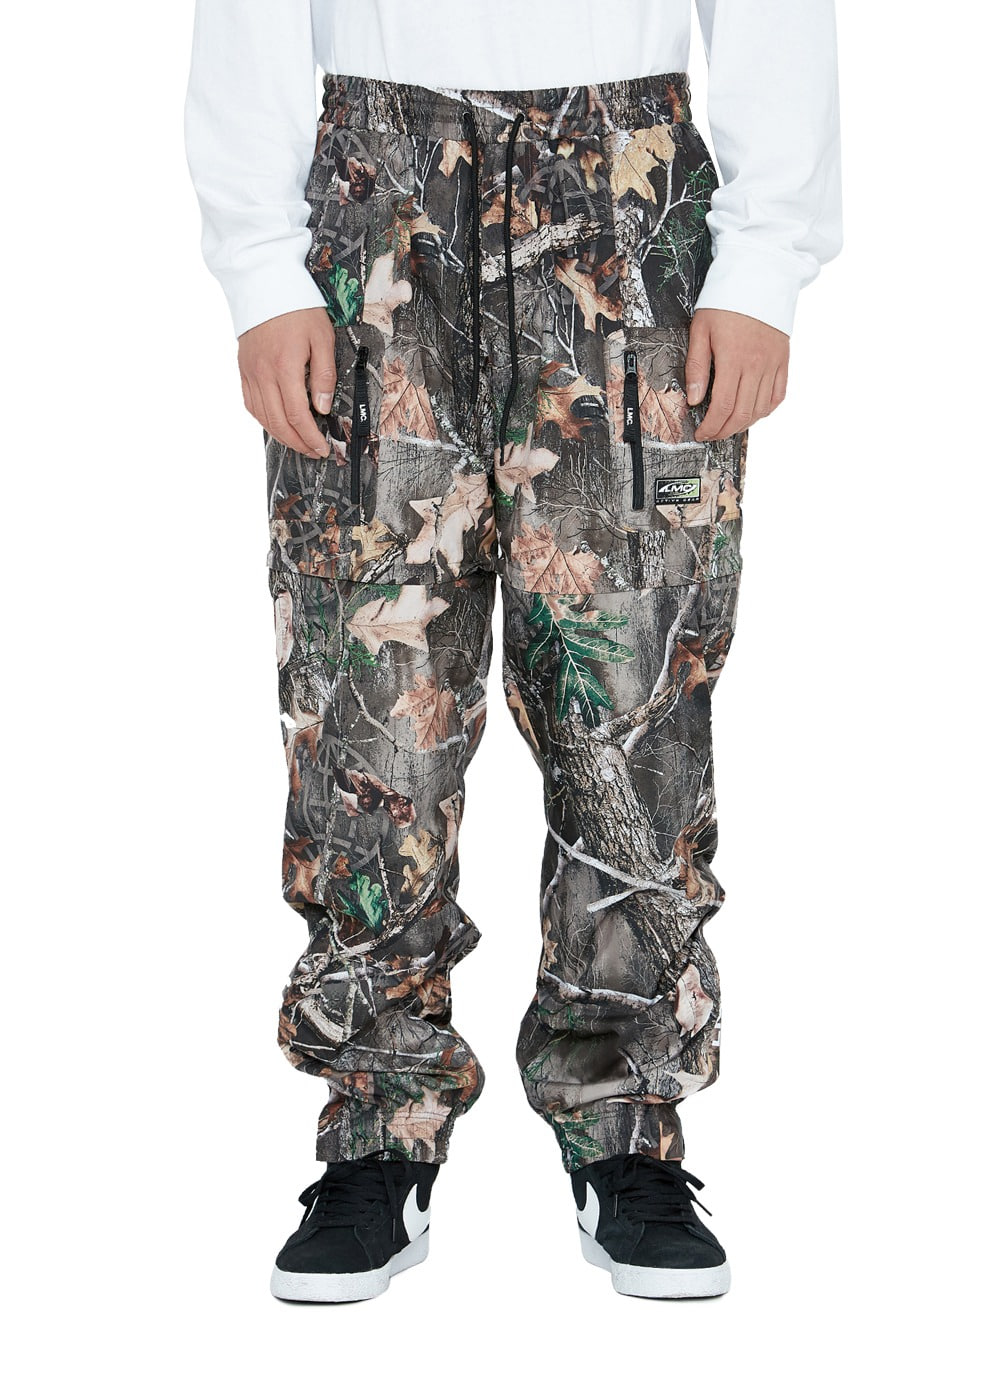 LMC ACTIVE GEAR TRANSFORM PANTS camo